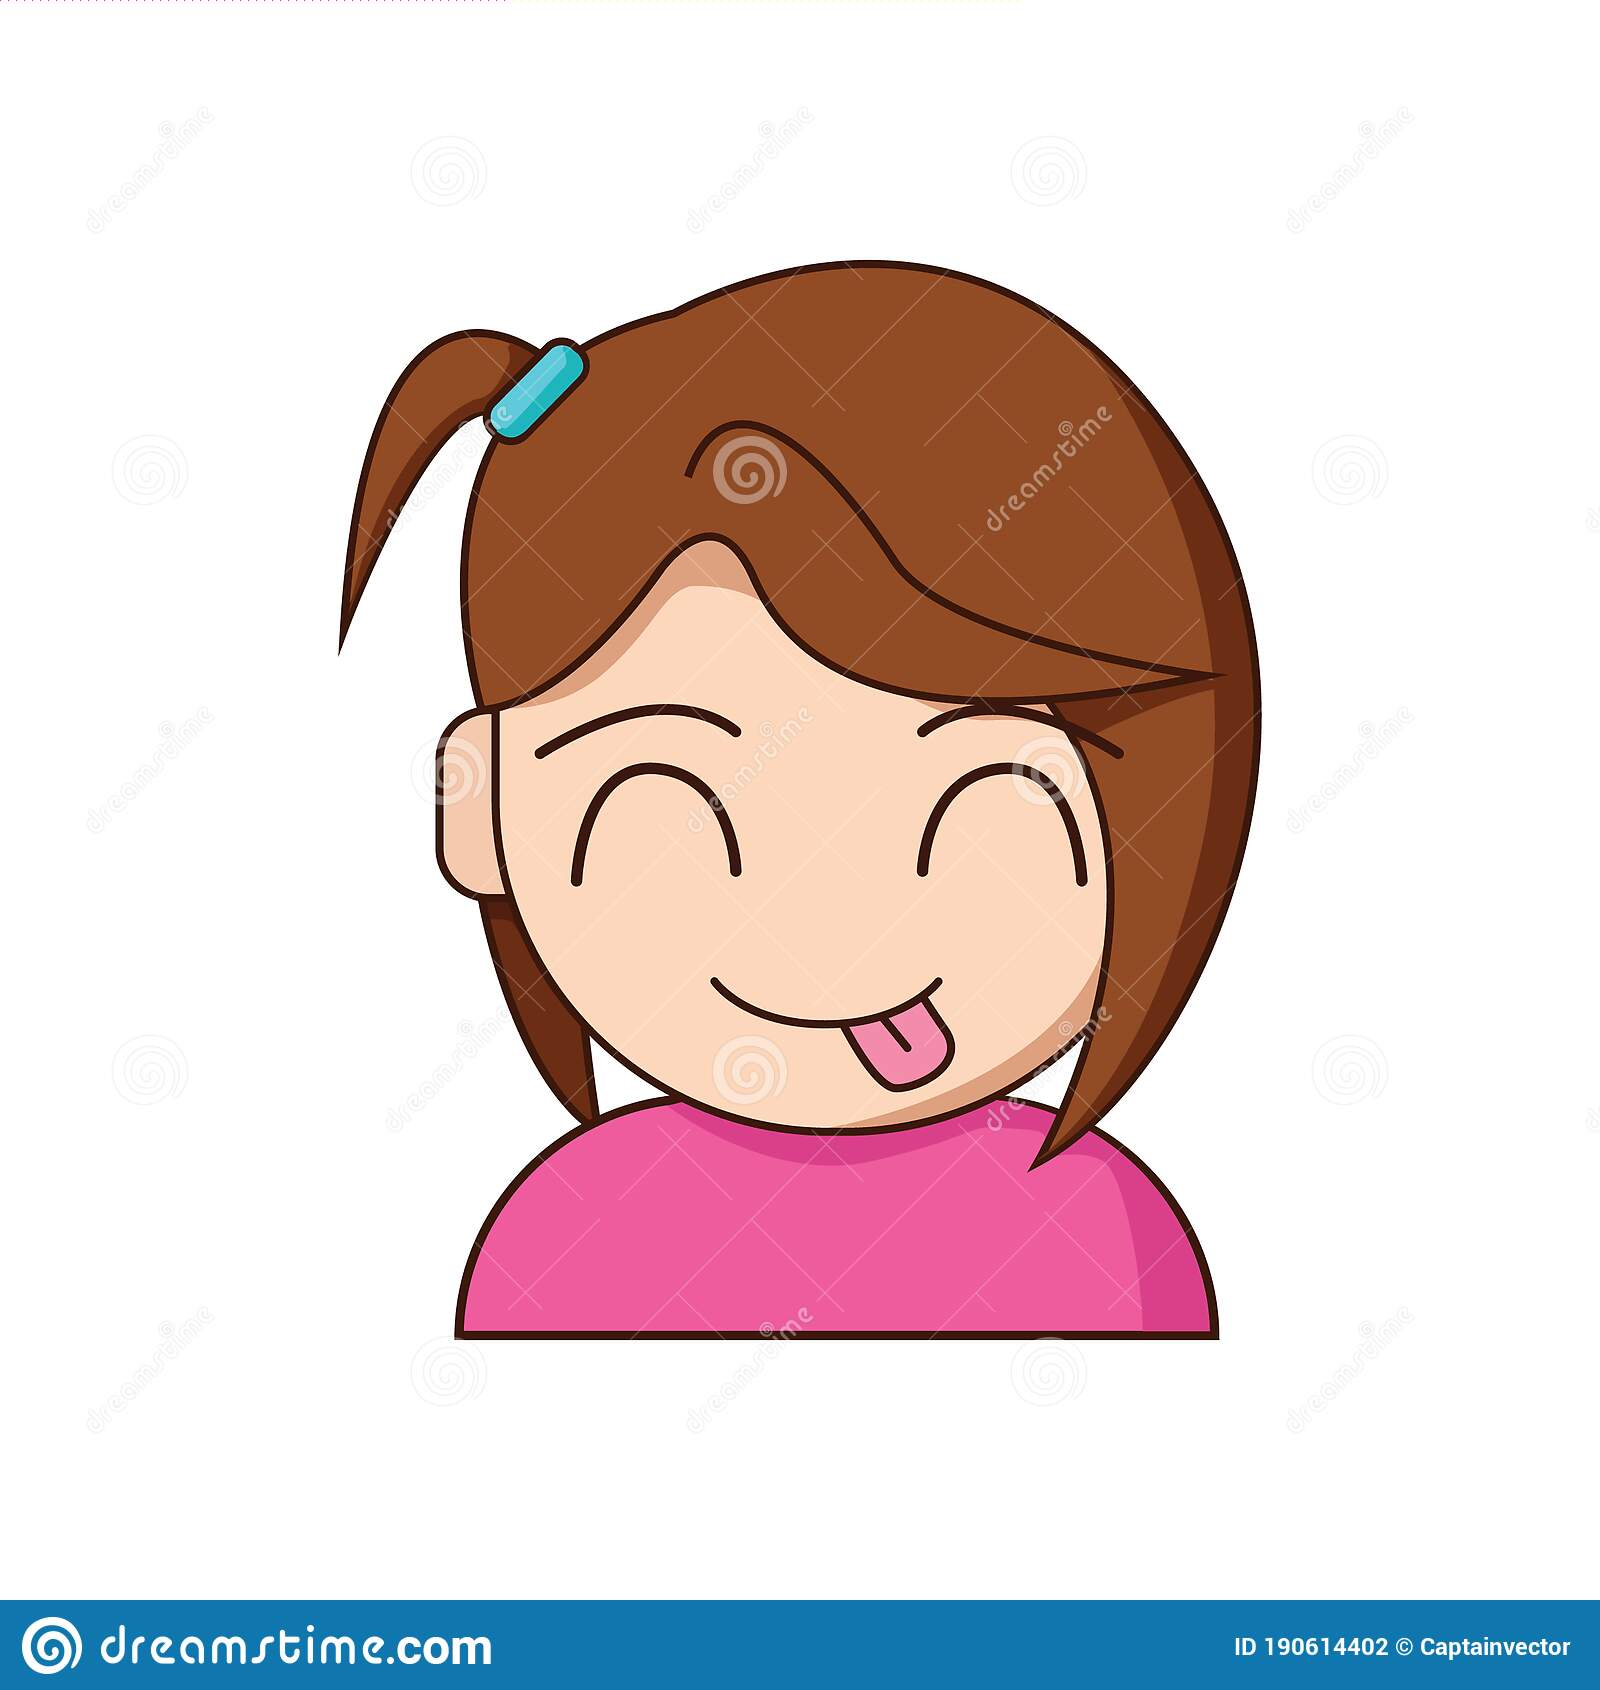 Girl Sticking Out Tongue. Vector Illustration Decorative Design